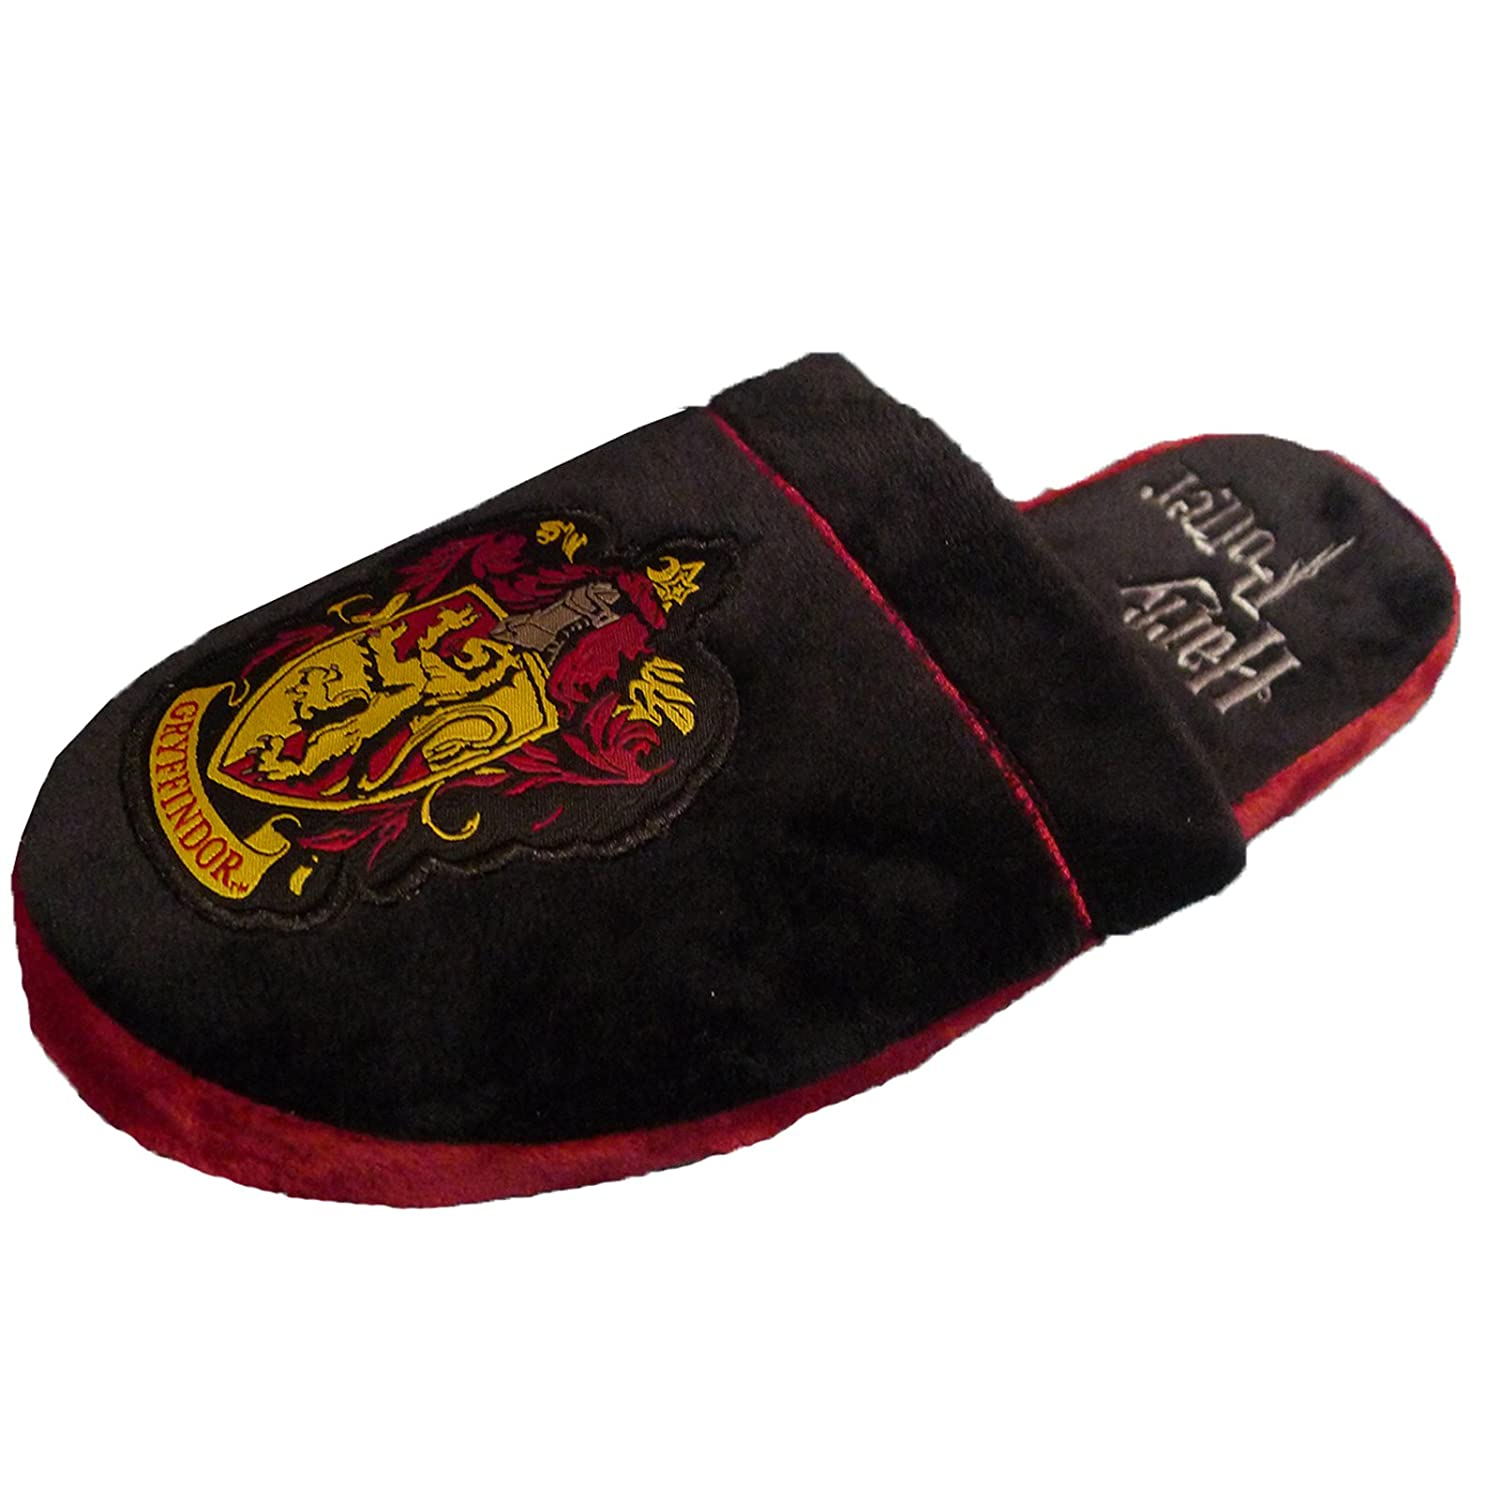 Harry Potter Slippers Gryffindor Size L Groovy Footwear: Amazon.es: Deportes y aire libre